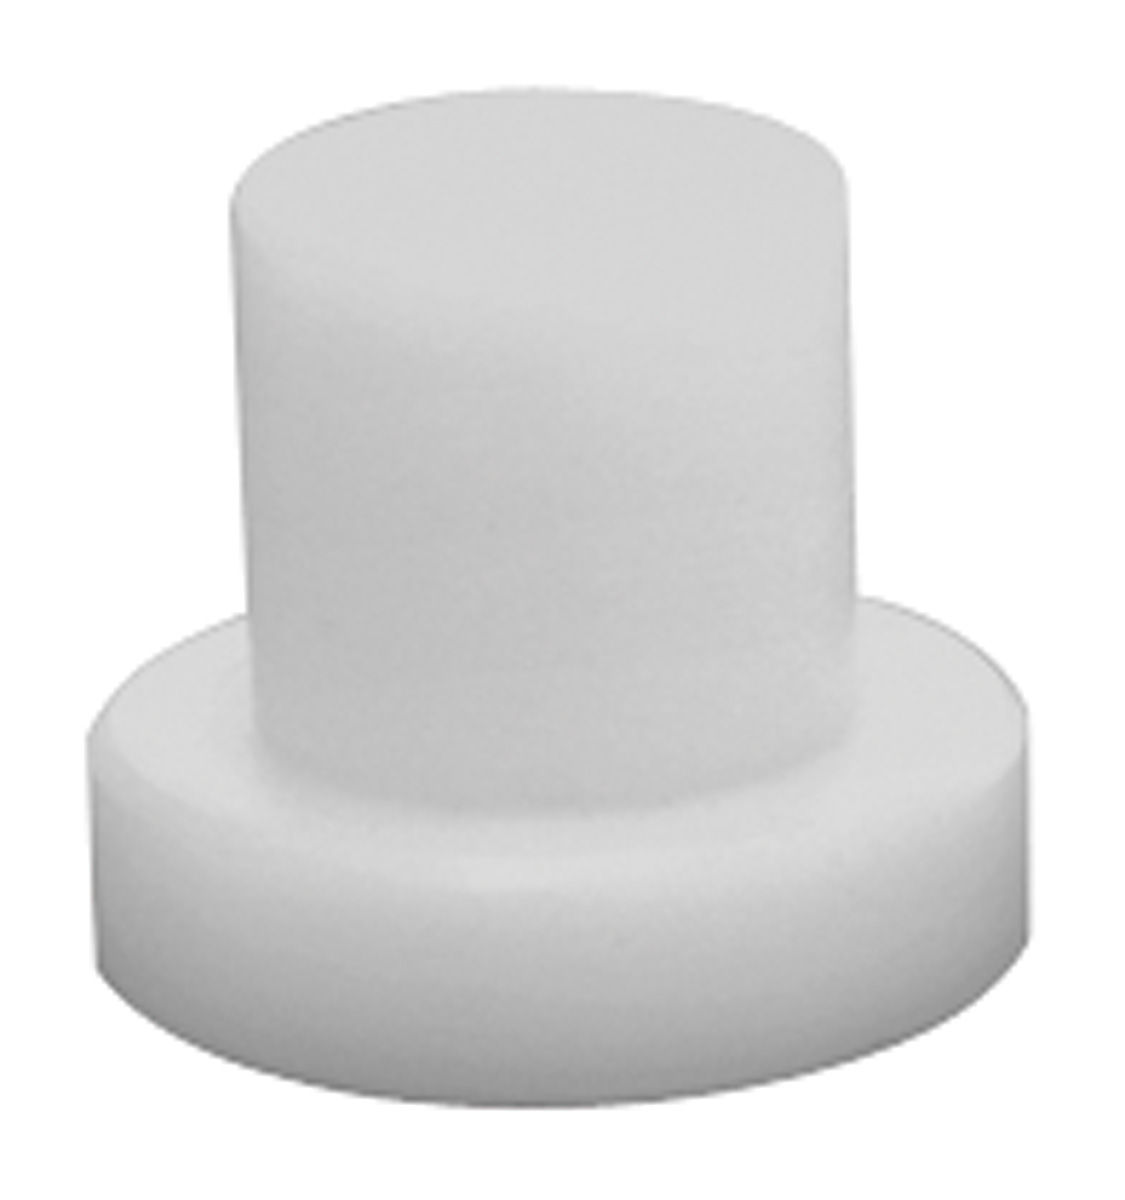 Photo of Camshaft Thrust Button nylon - small-block